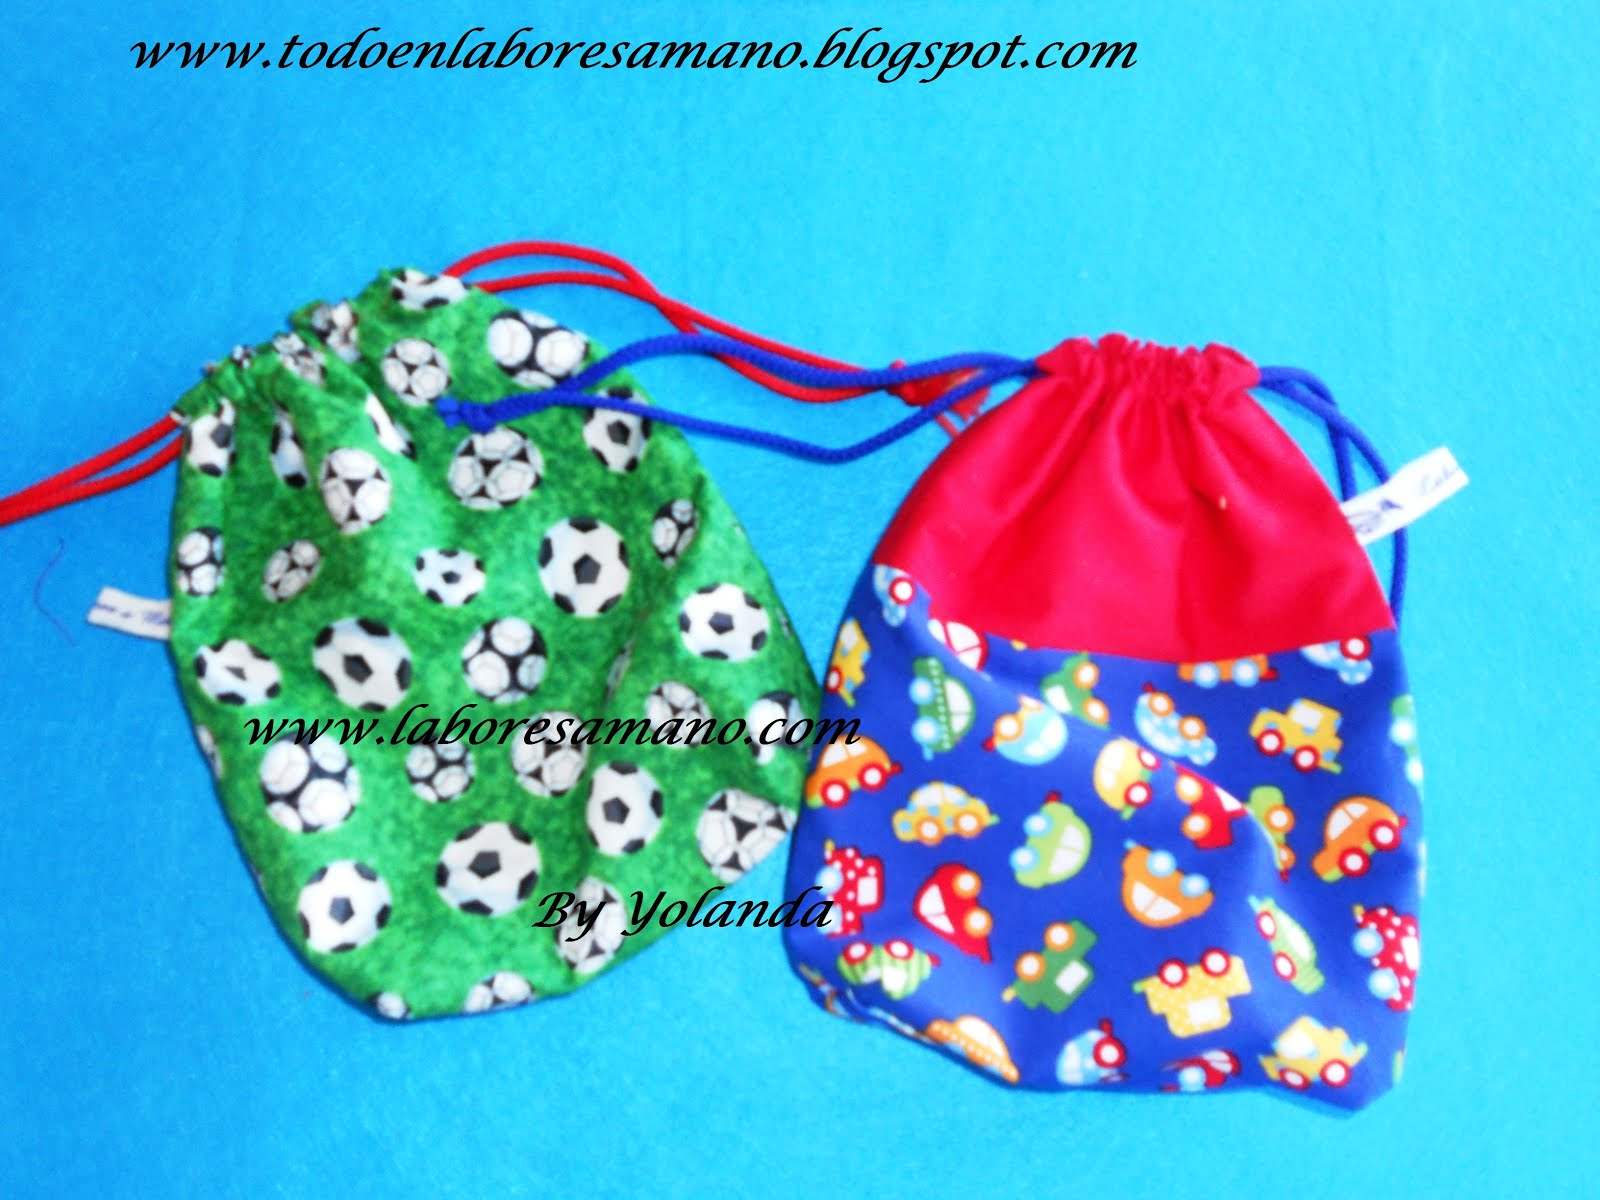 Bolsitas reversibles para bebés y niños especiales para guardería